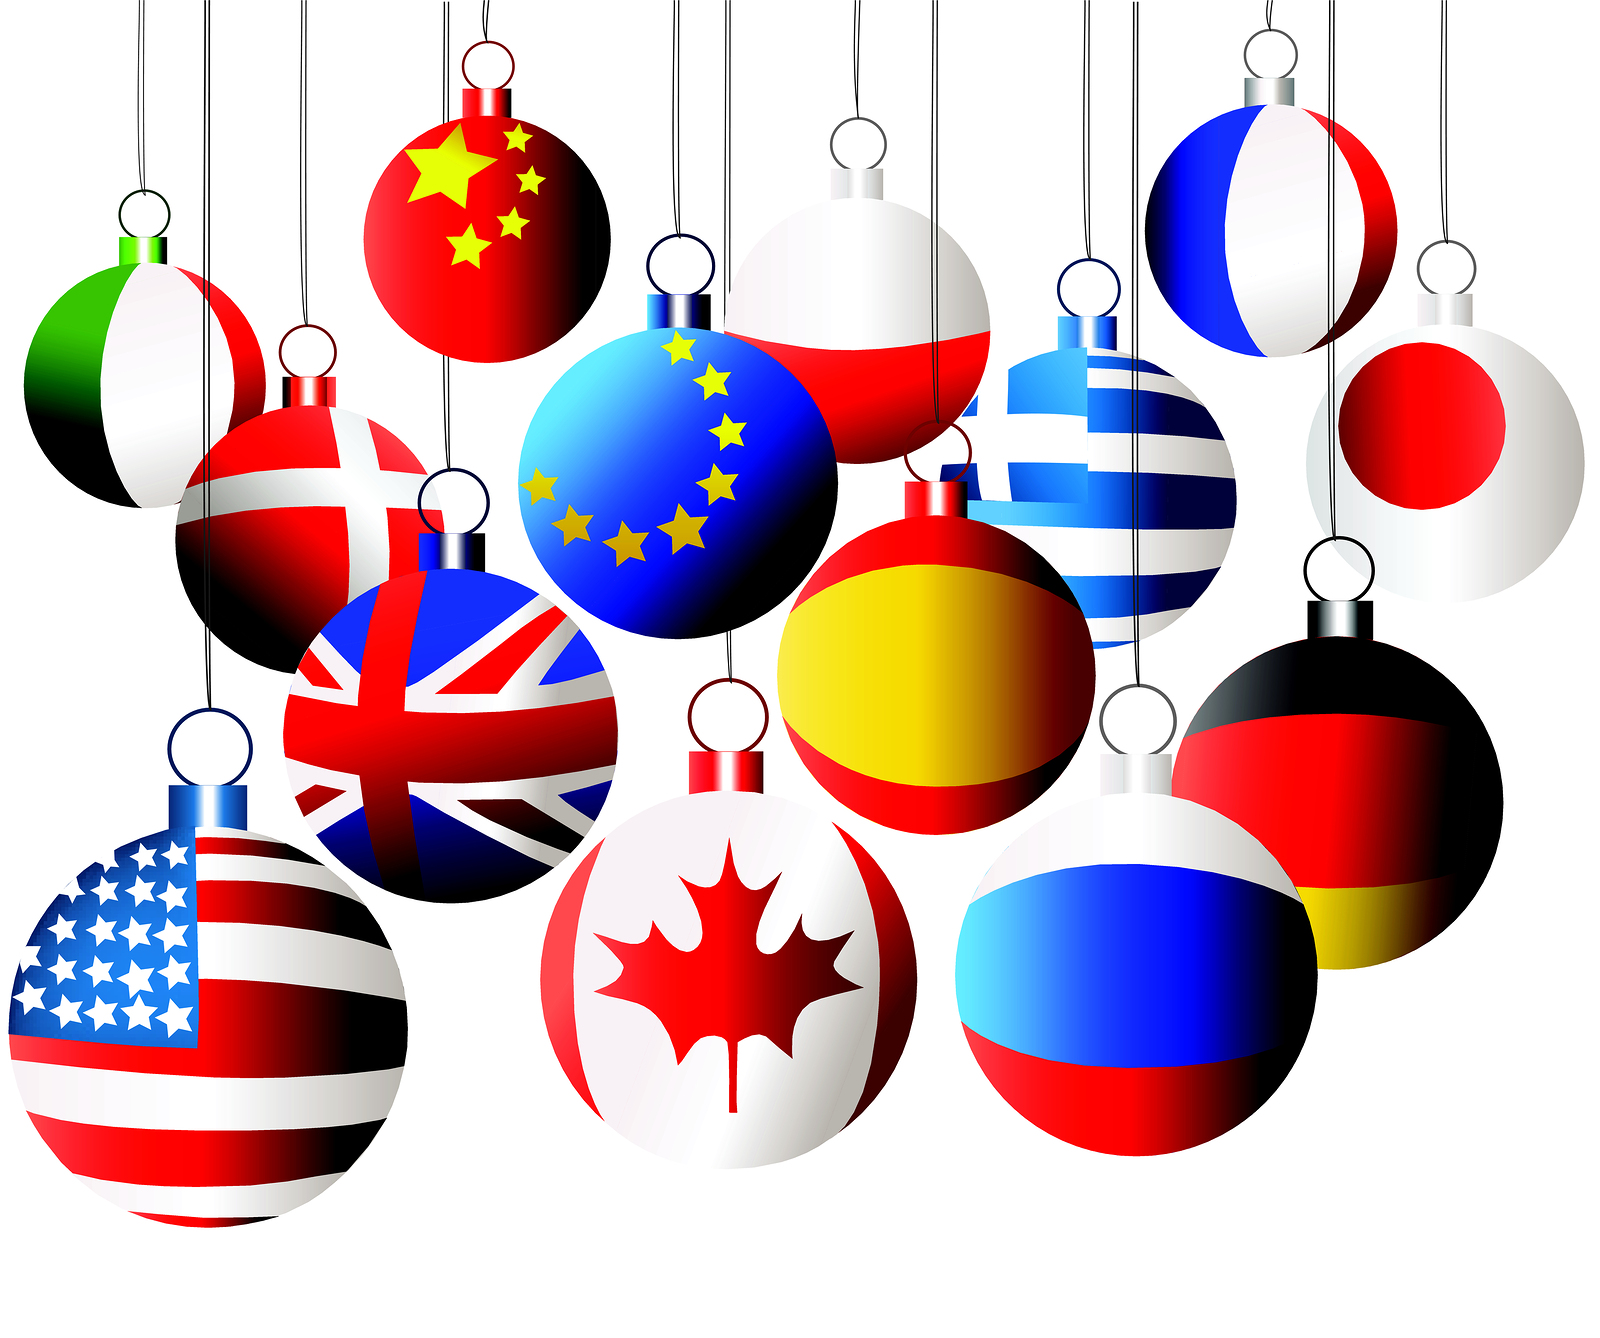 transparent library Mission clipart international flag. Missions free download best.